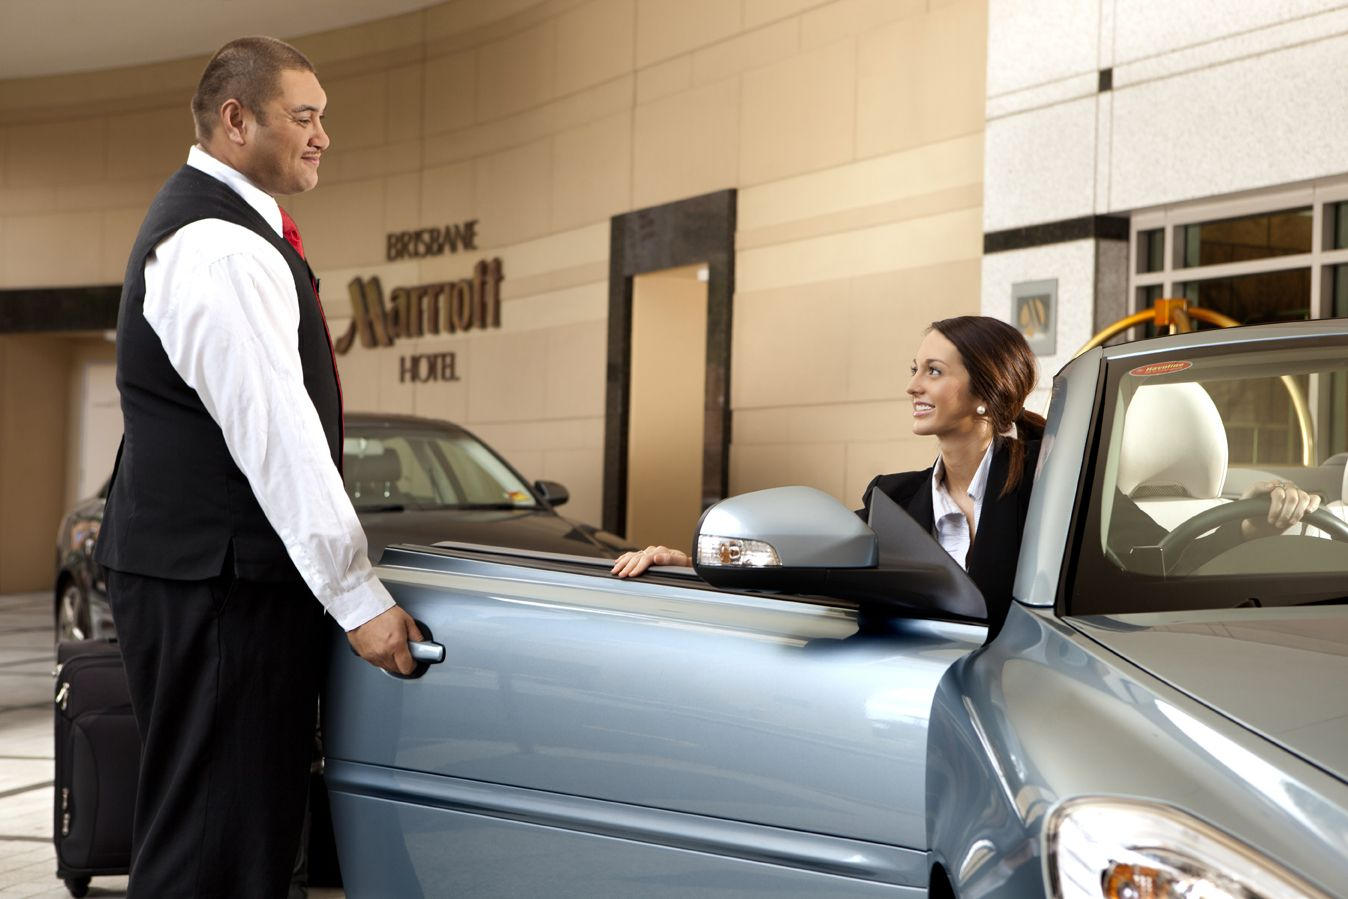 Trip Simple Tip For Valet Parking Tips By Shopping Mall Valet